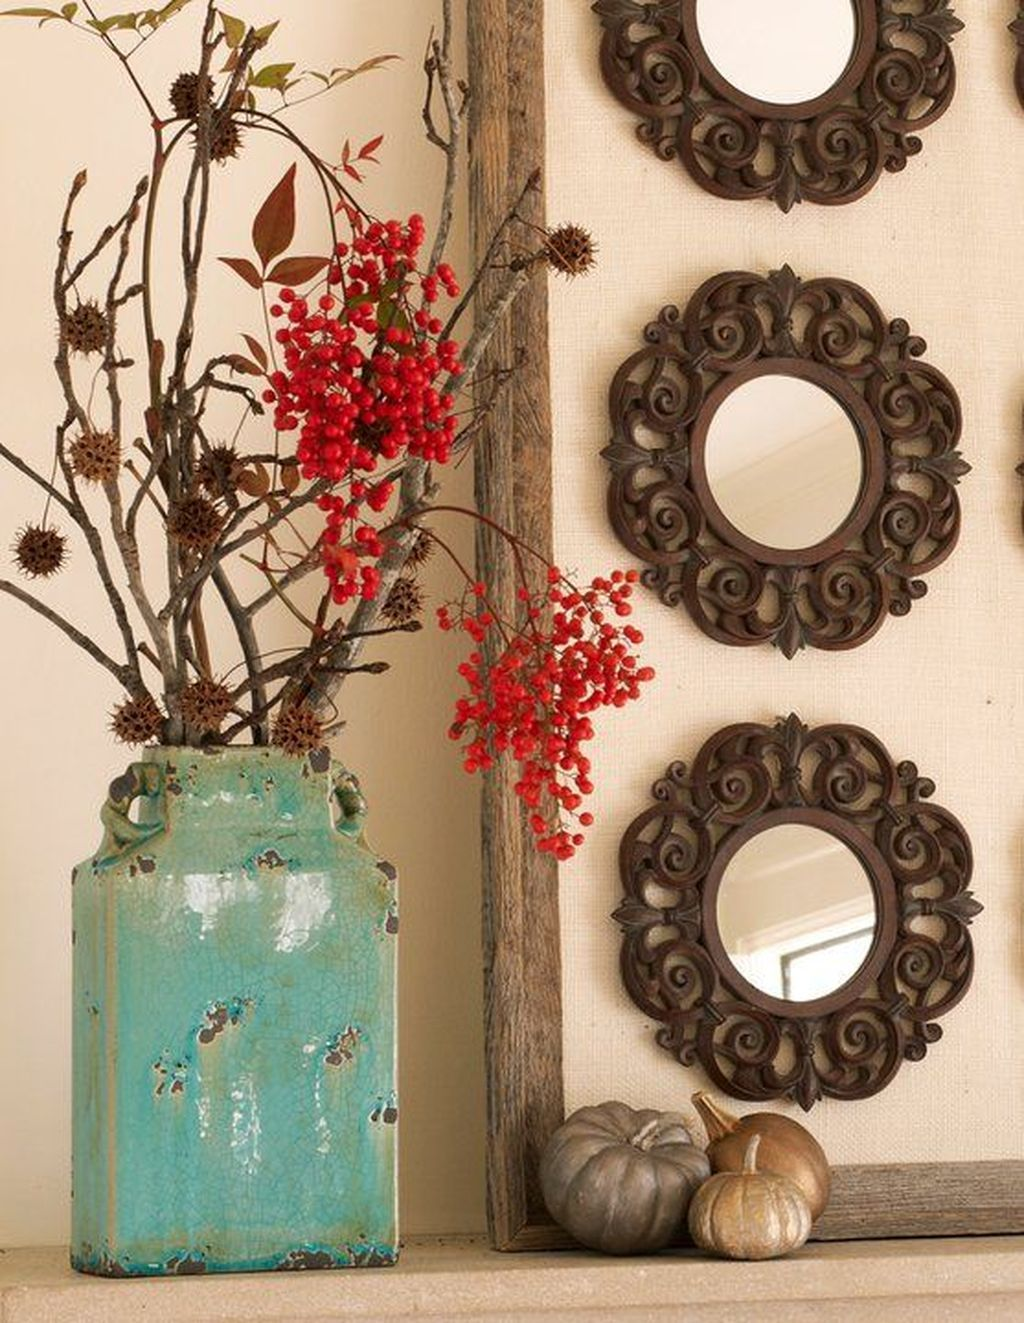 47 Awesome Teal Color Scheme For Fall Decor Ideas images